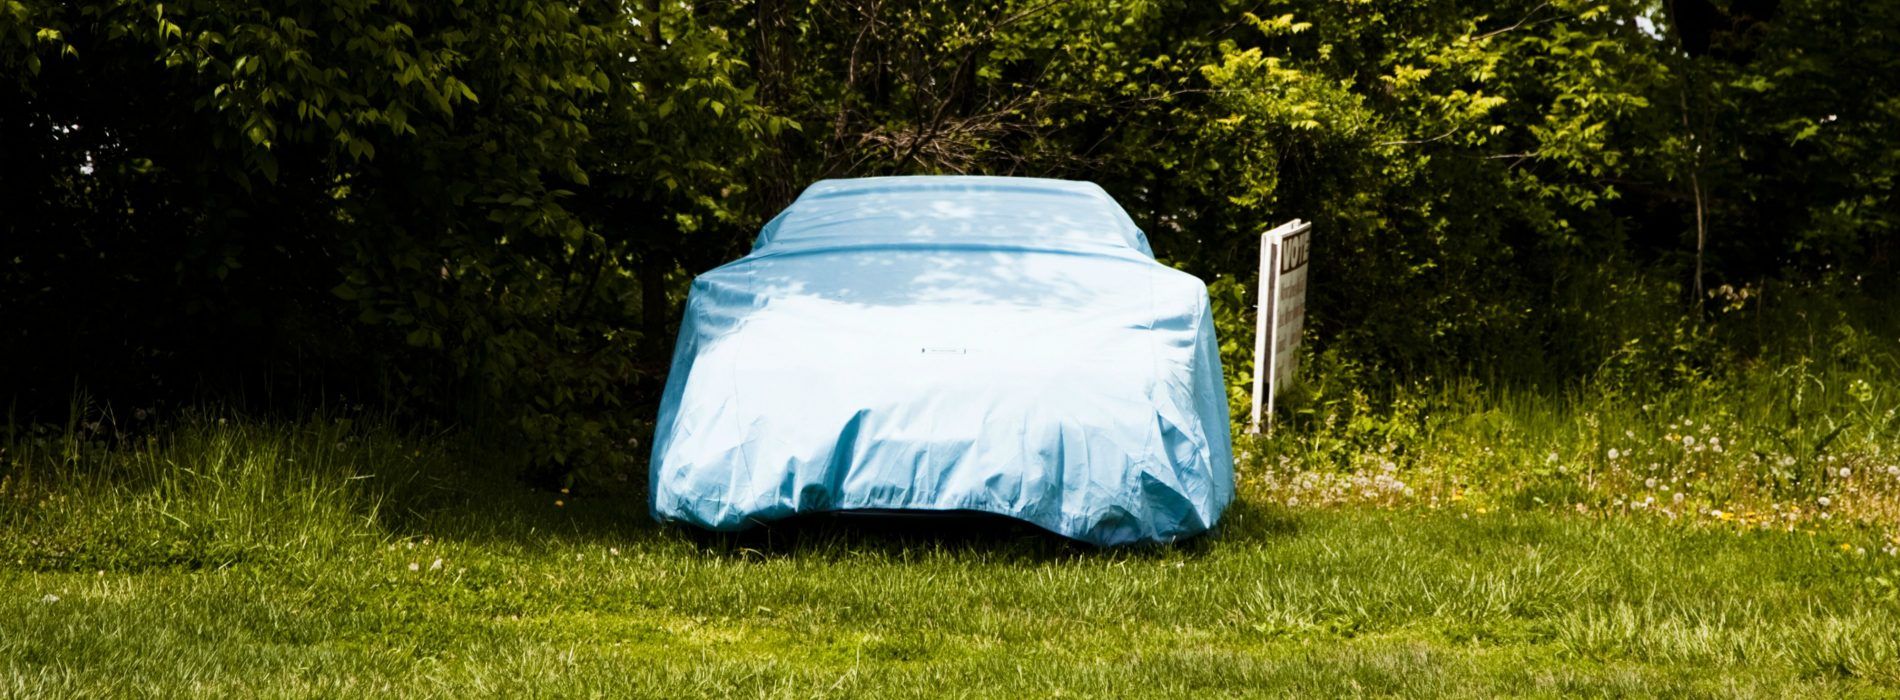 Resurrect your car's drop-dead look: